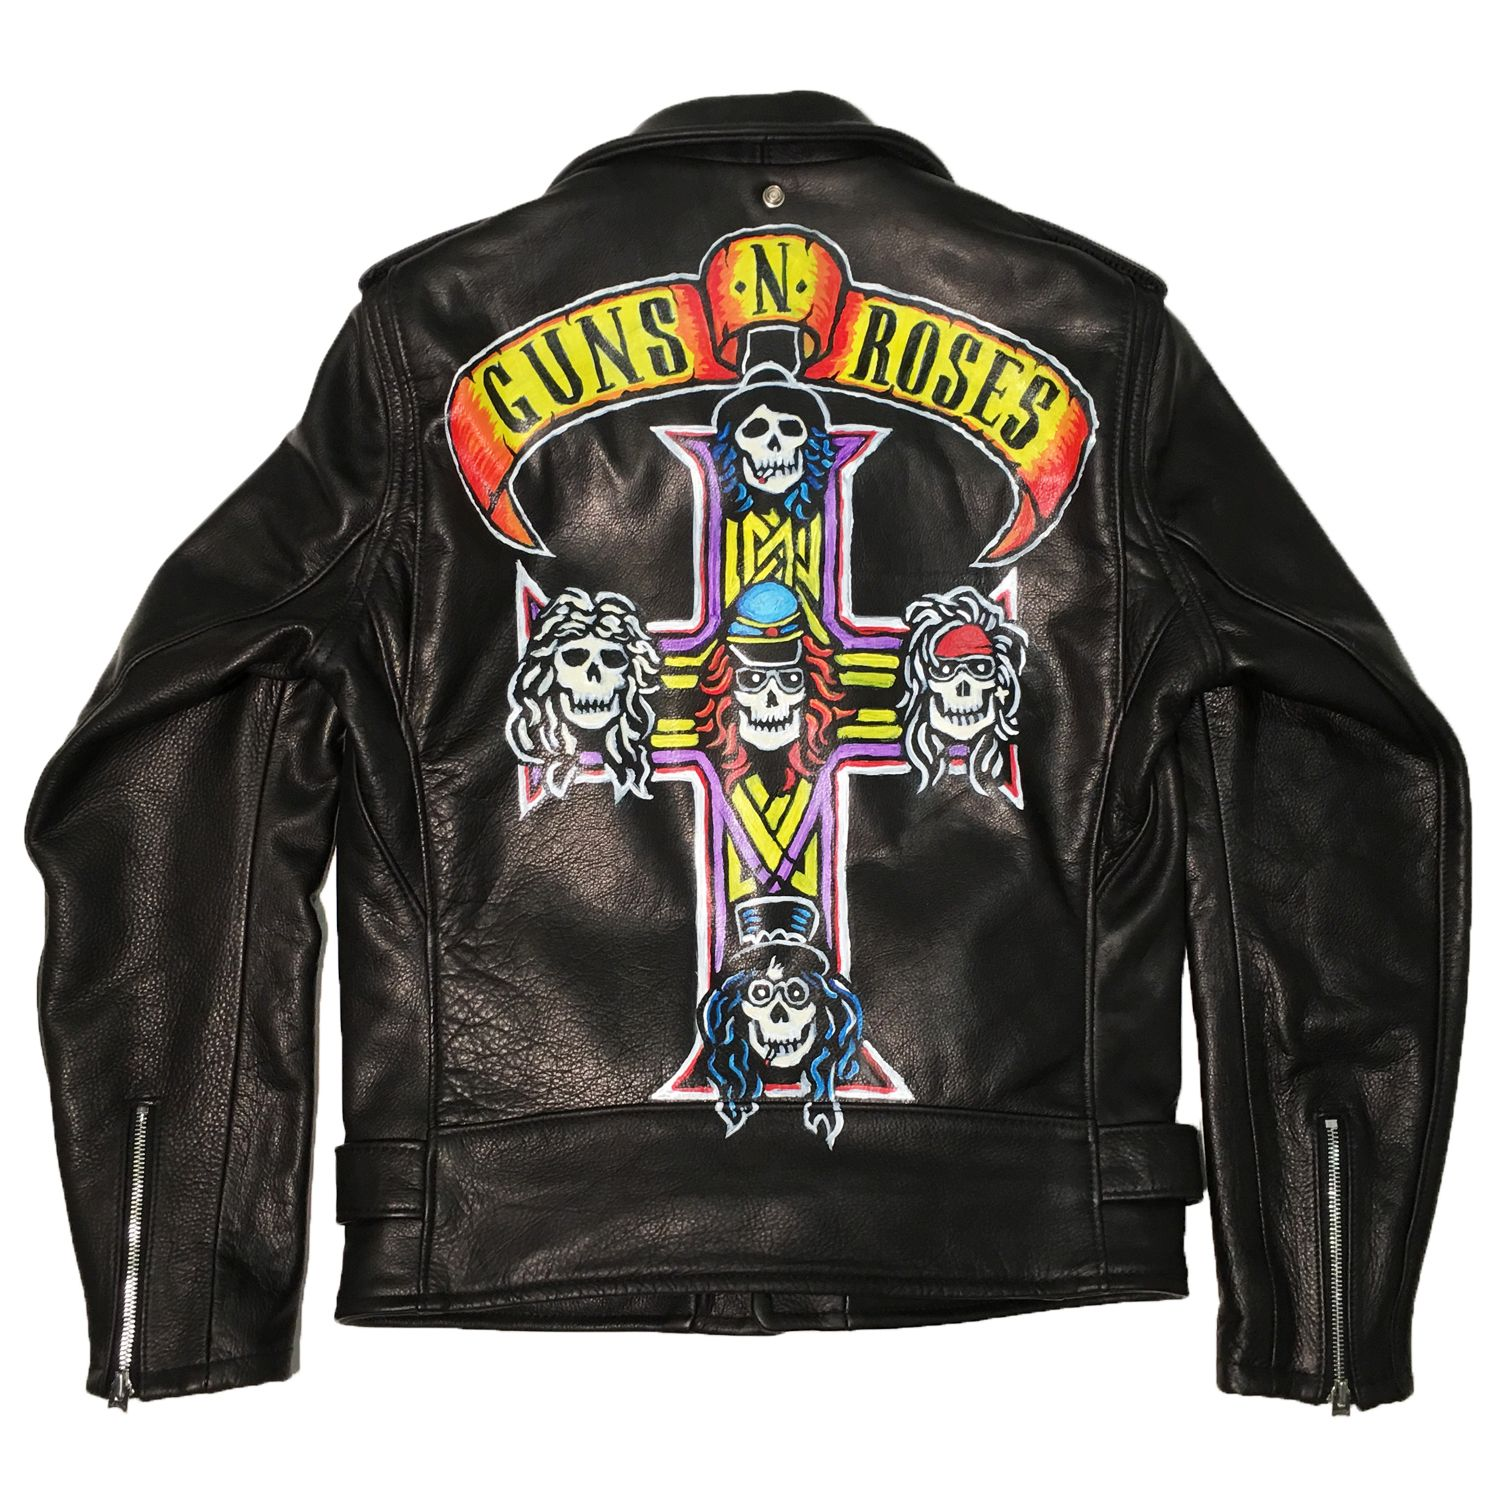 Leather jacket with roses - A John Varvatos X Guns N Roses Leather Jacket